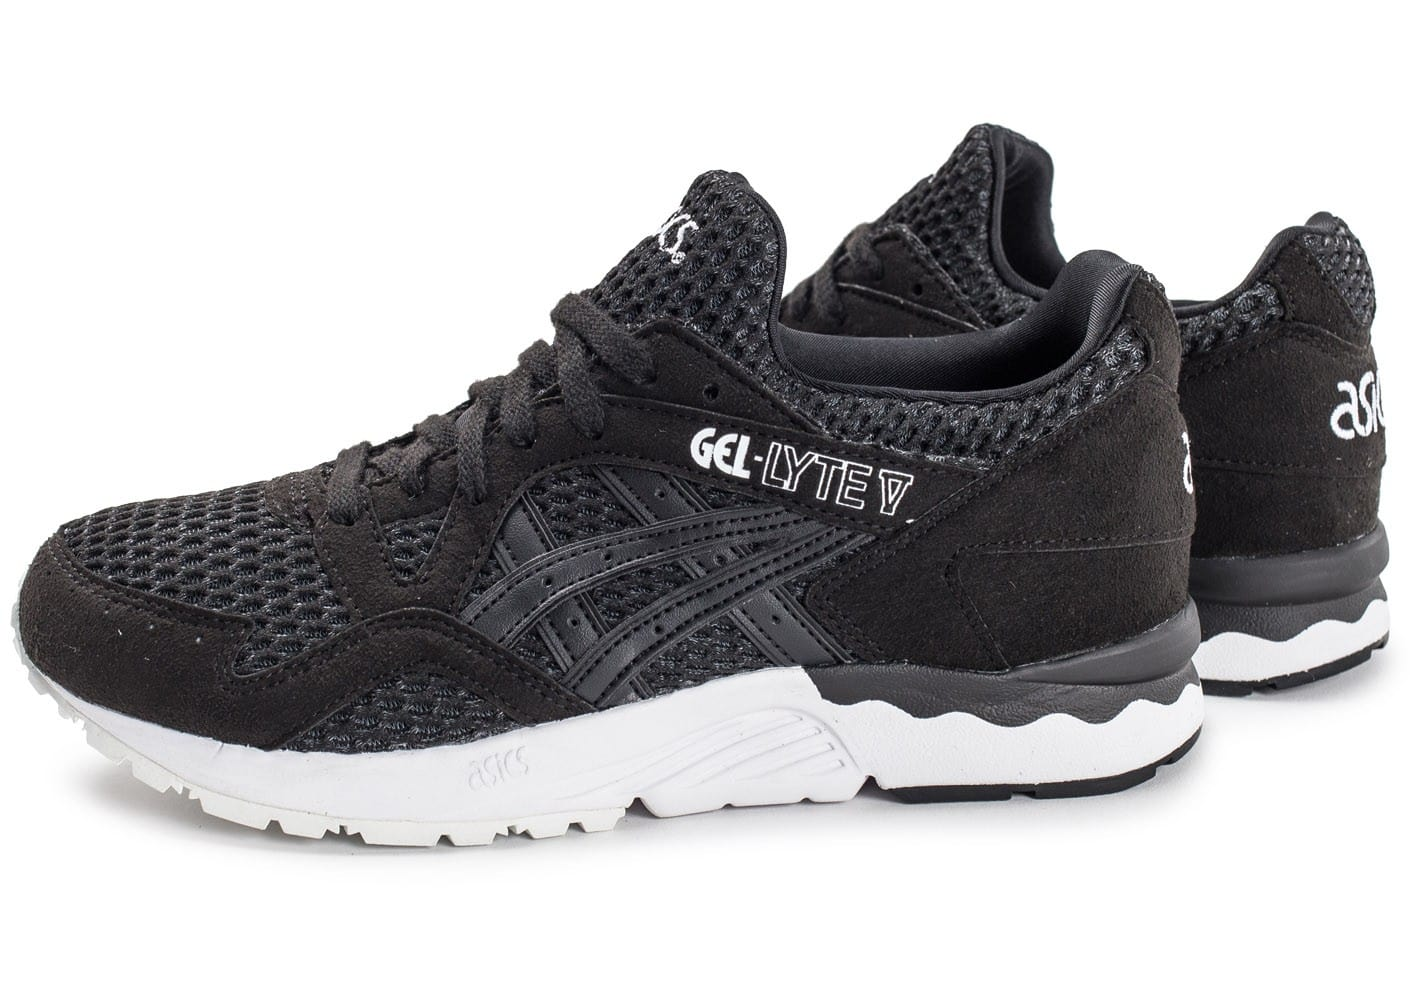 asics gel lyte v w noire et blanche chaussures black friday chausport. Black Bedroom Furniture Sets. Home Design Ideas